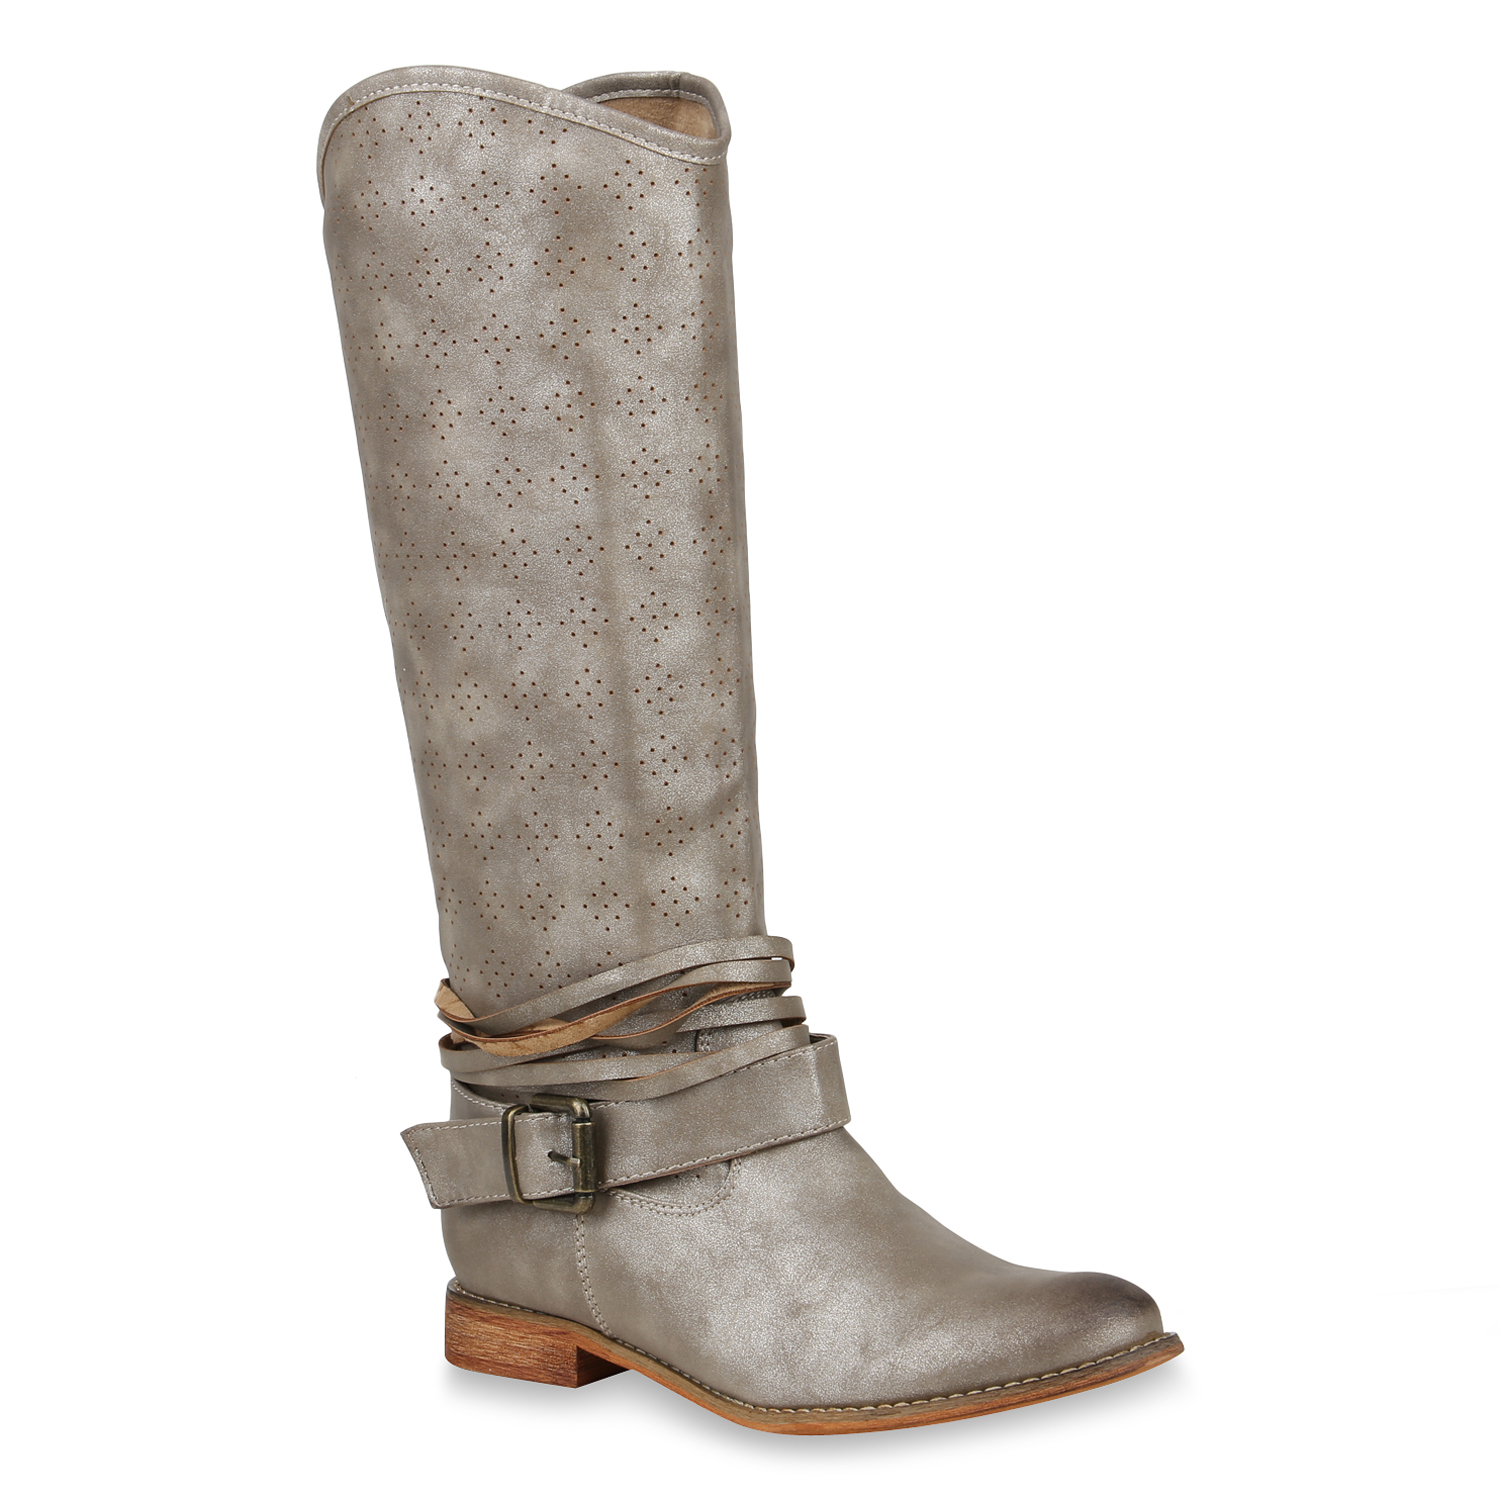 f94df4203a9d40 Damen Stiefel in Gold (820196-155) - stiefelparadies.de